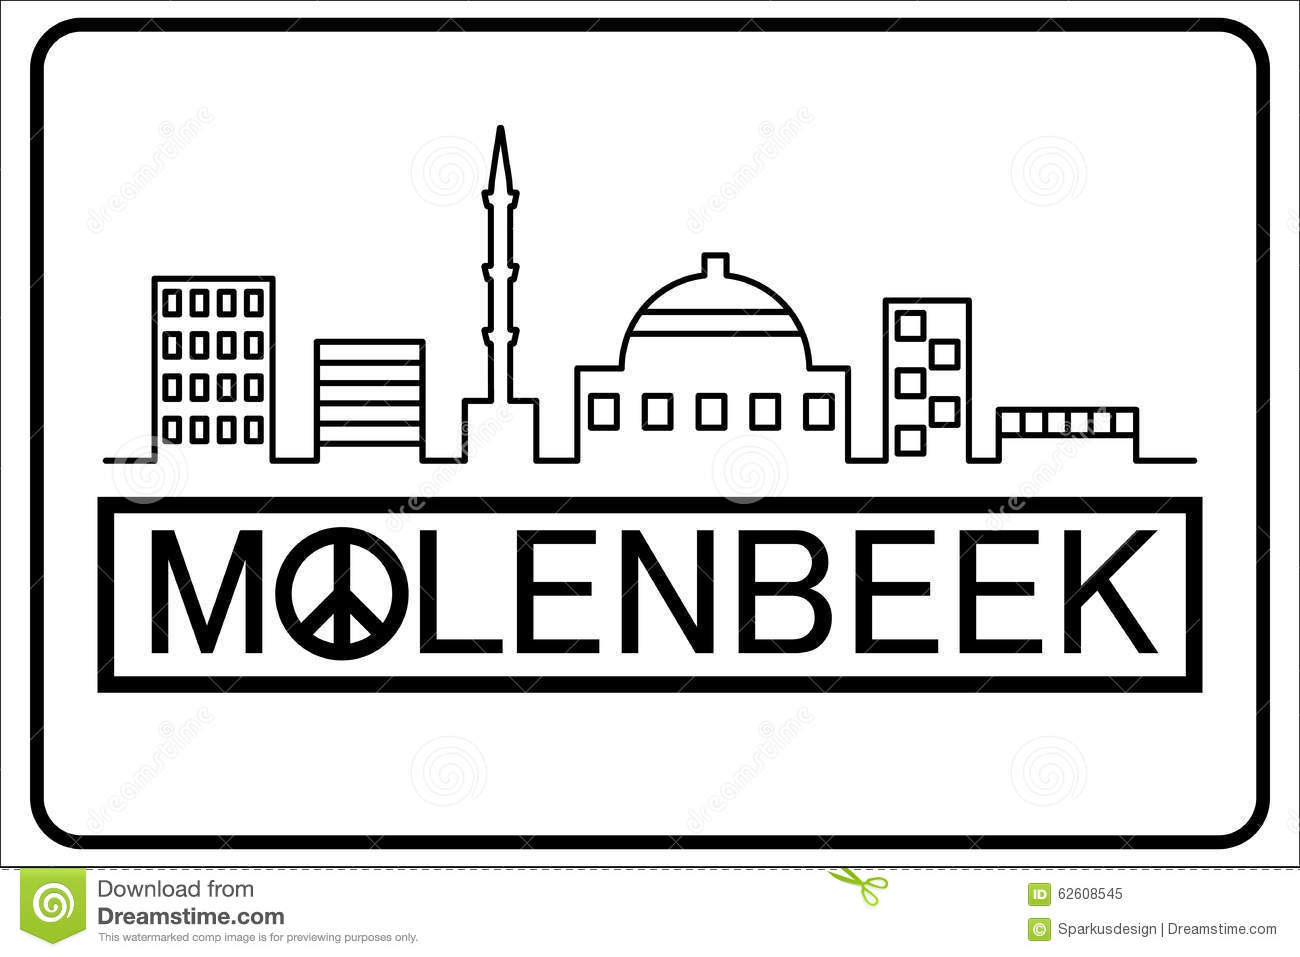 Molenbeek Text With Buildings Outline Stock Vector Illustration Of